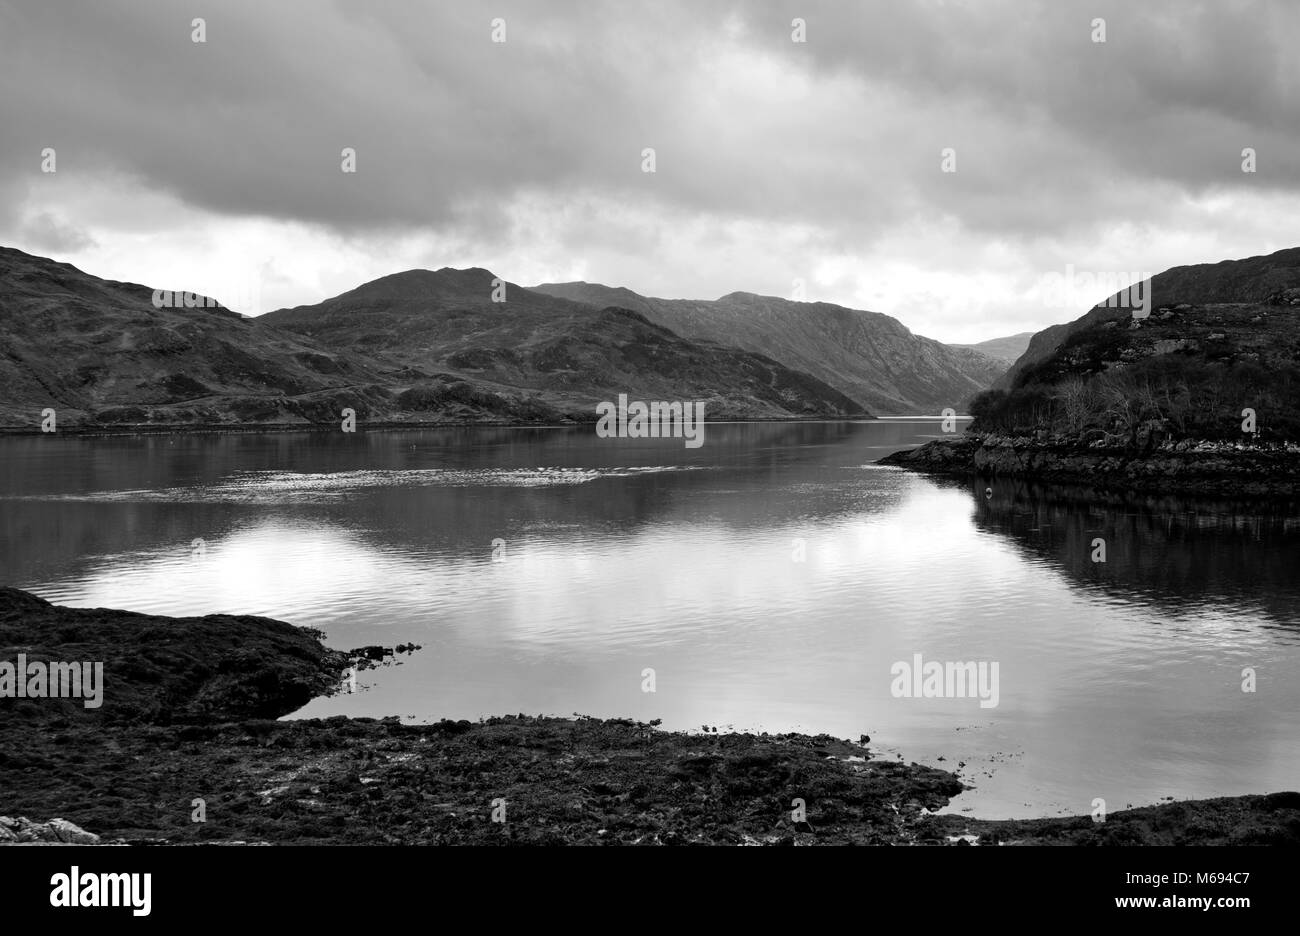 North coast 500 - Loch Glendhu at low tide, seen from Kylesku on a calm and cloudy day, Sutherland, Scottish Highlands, - Stock Image